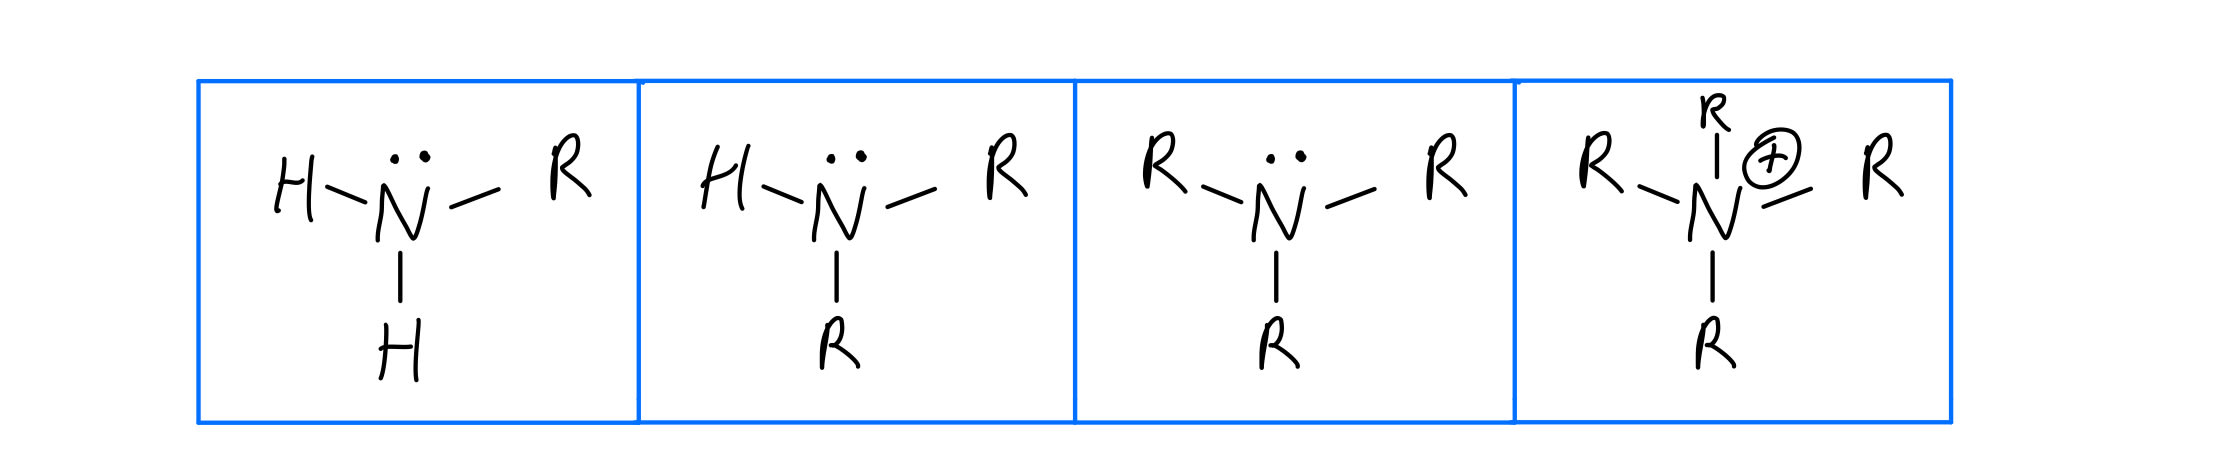 4 degrees of amine RNH2, R2NH, R3NH, R4N+